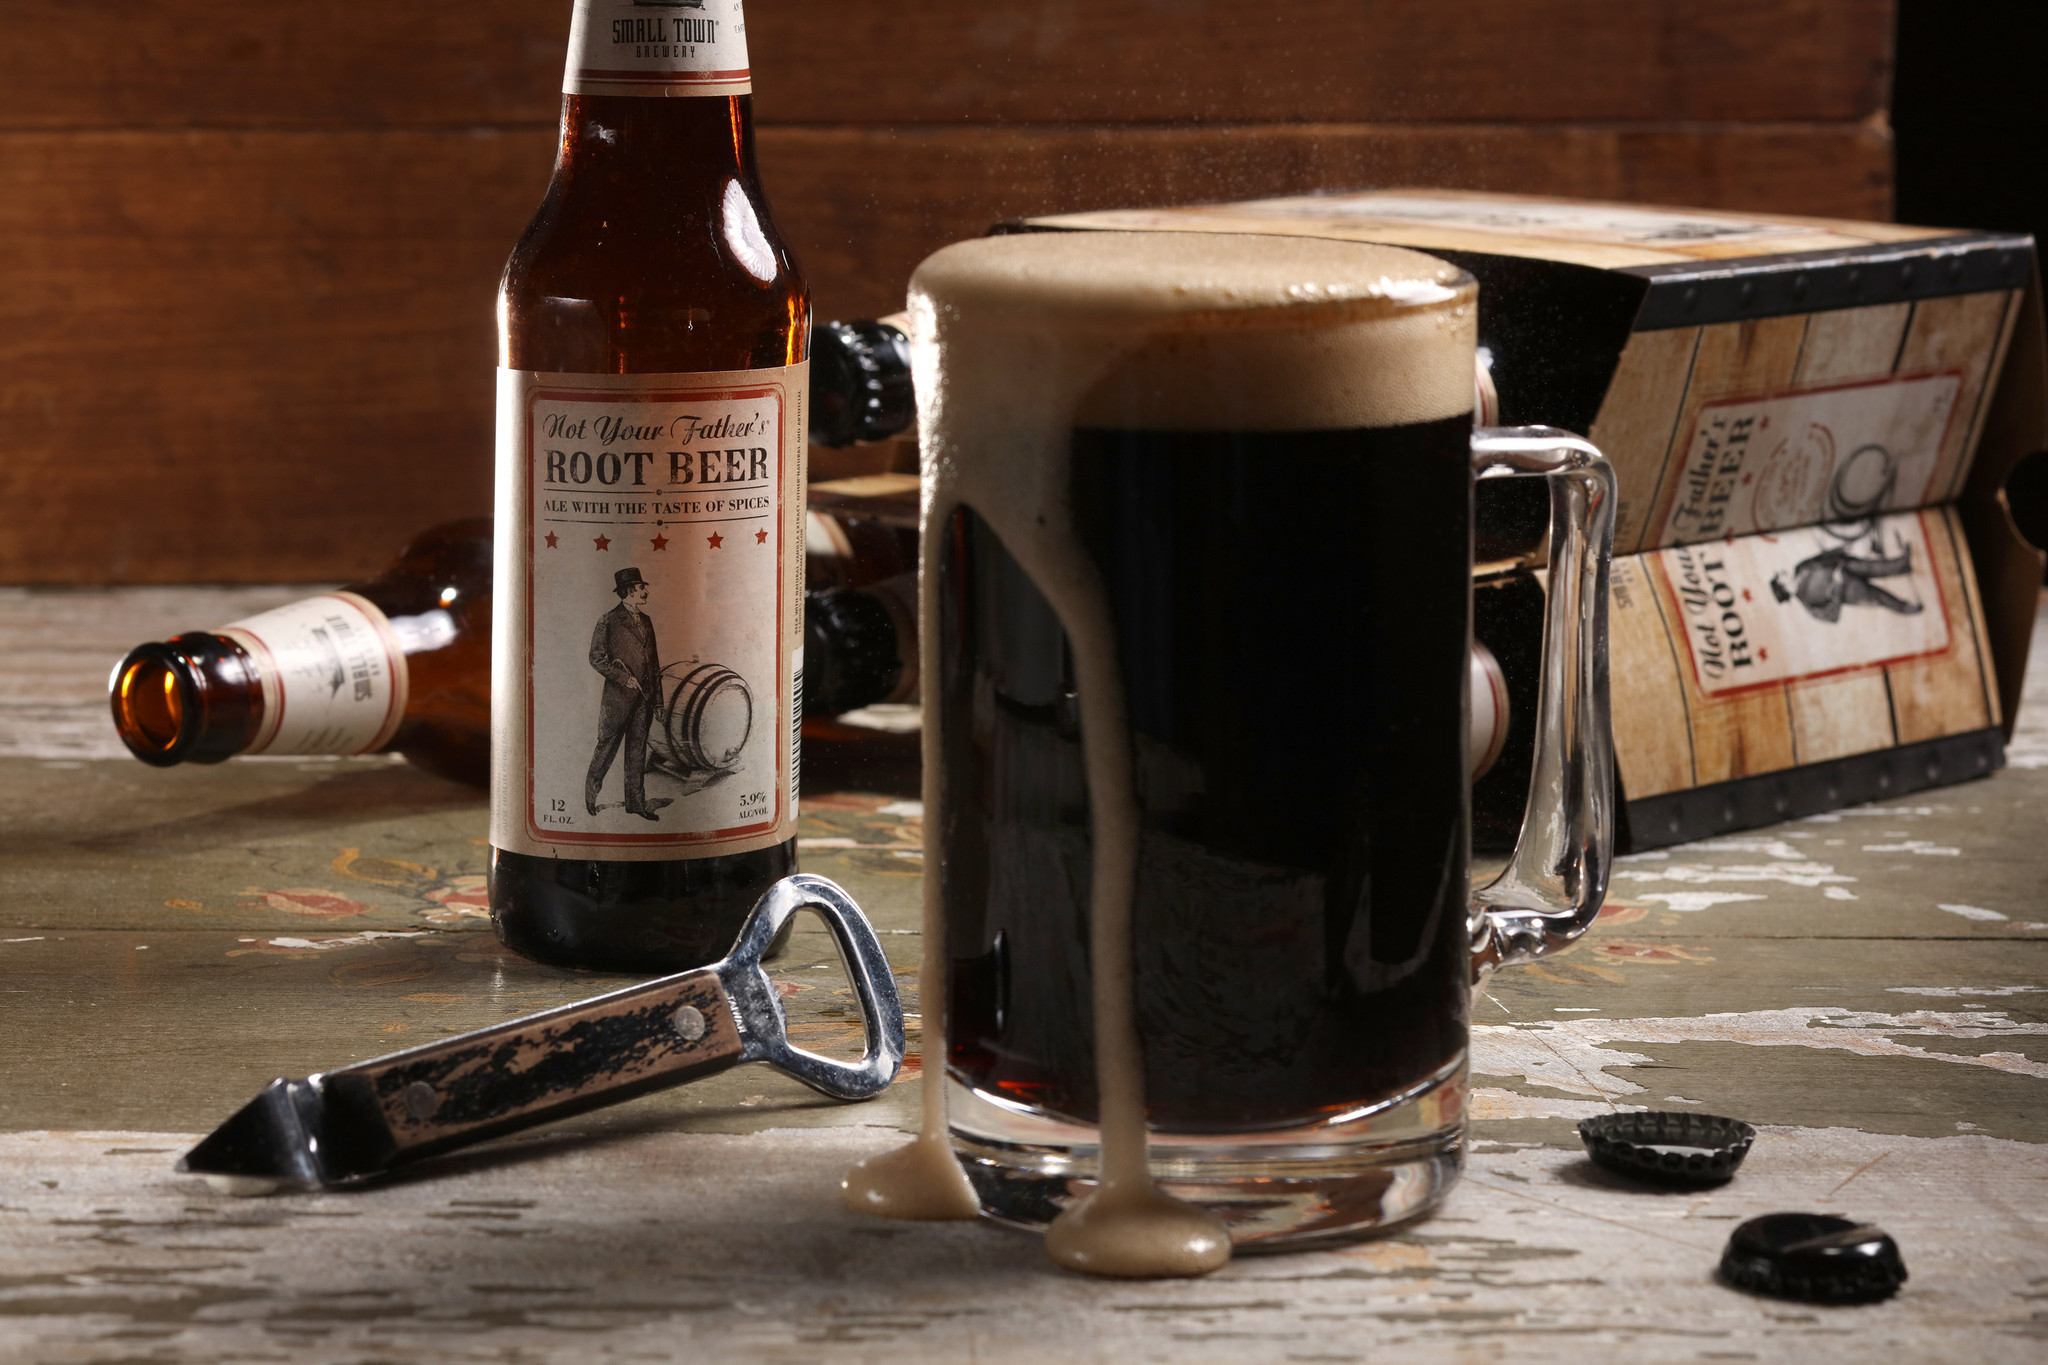 Where to buy not your father s root beer - Not Your Father S Root Beer And Its Curious Rise To National Sensation Chicago Tribune